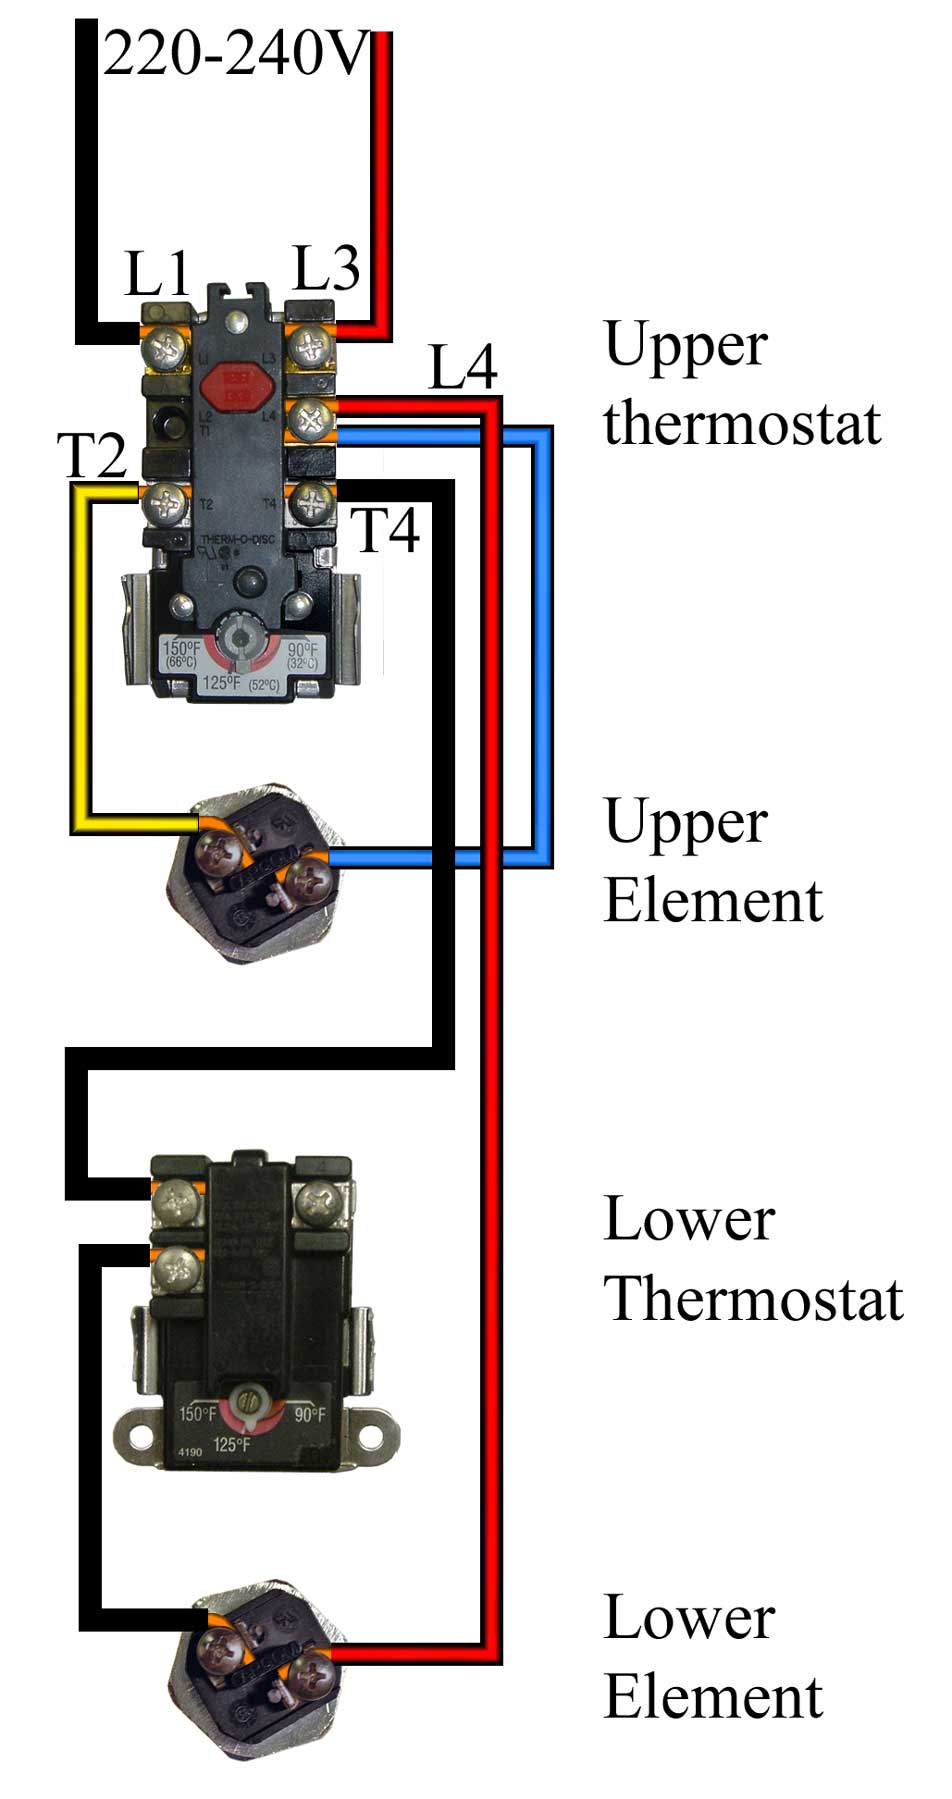 Central Heating And Hot Water Electrical Diagram: Water Heating Wiring Diagram - Wiring Diagram Homerh:3.9.1.medi-med-ruhr.de,Design